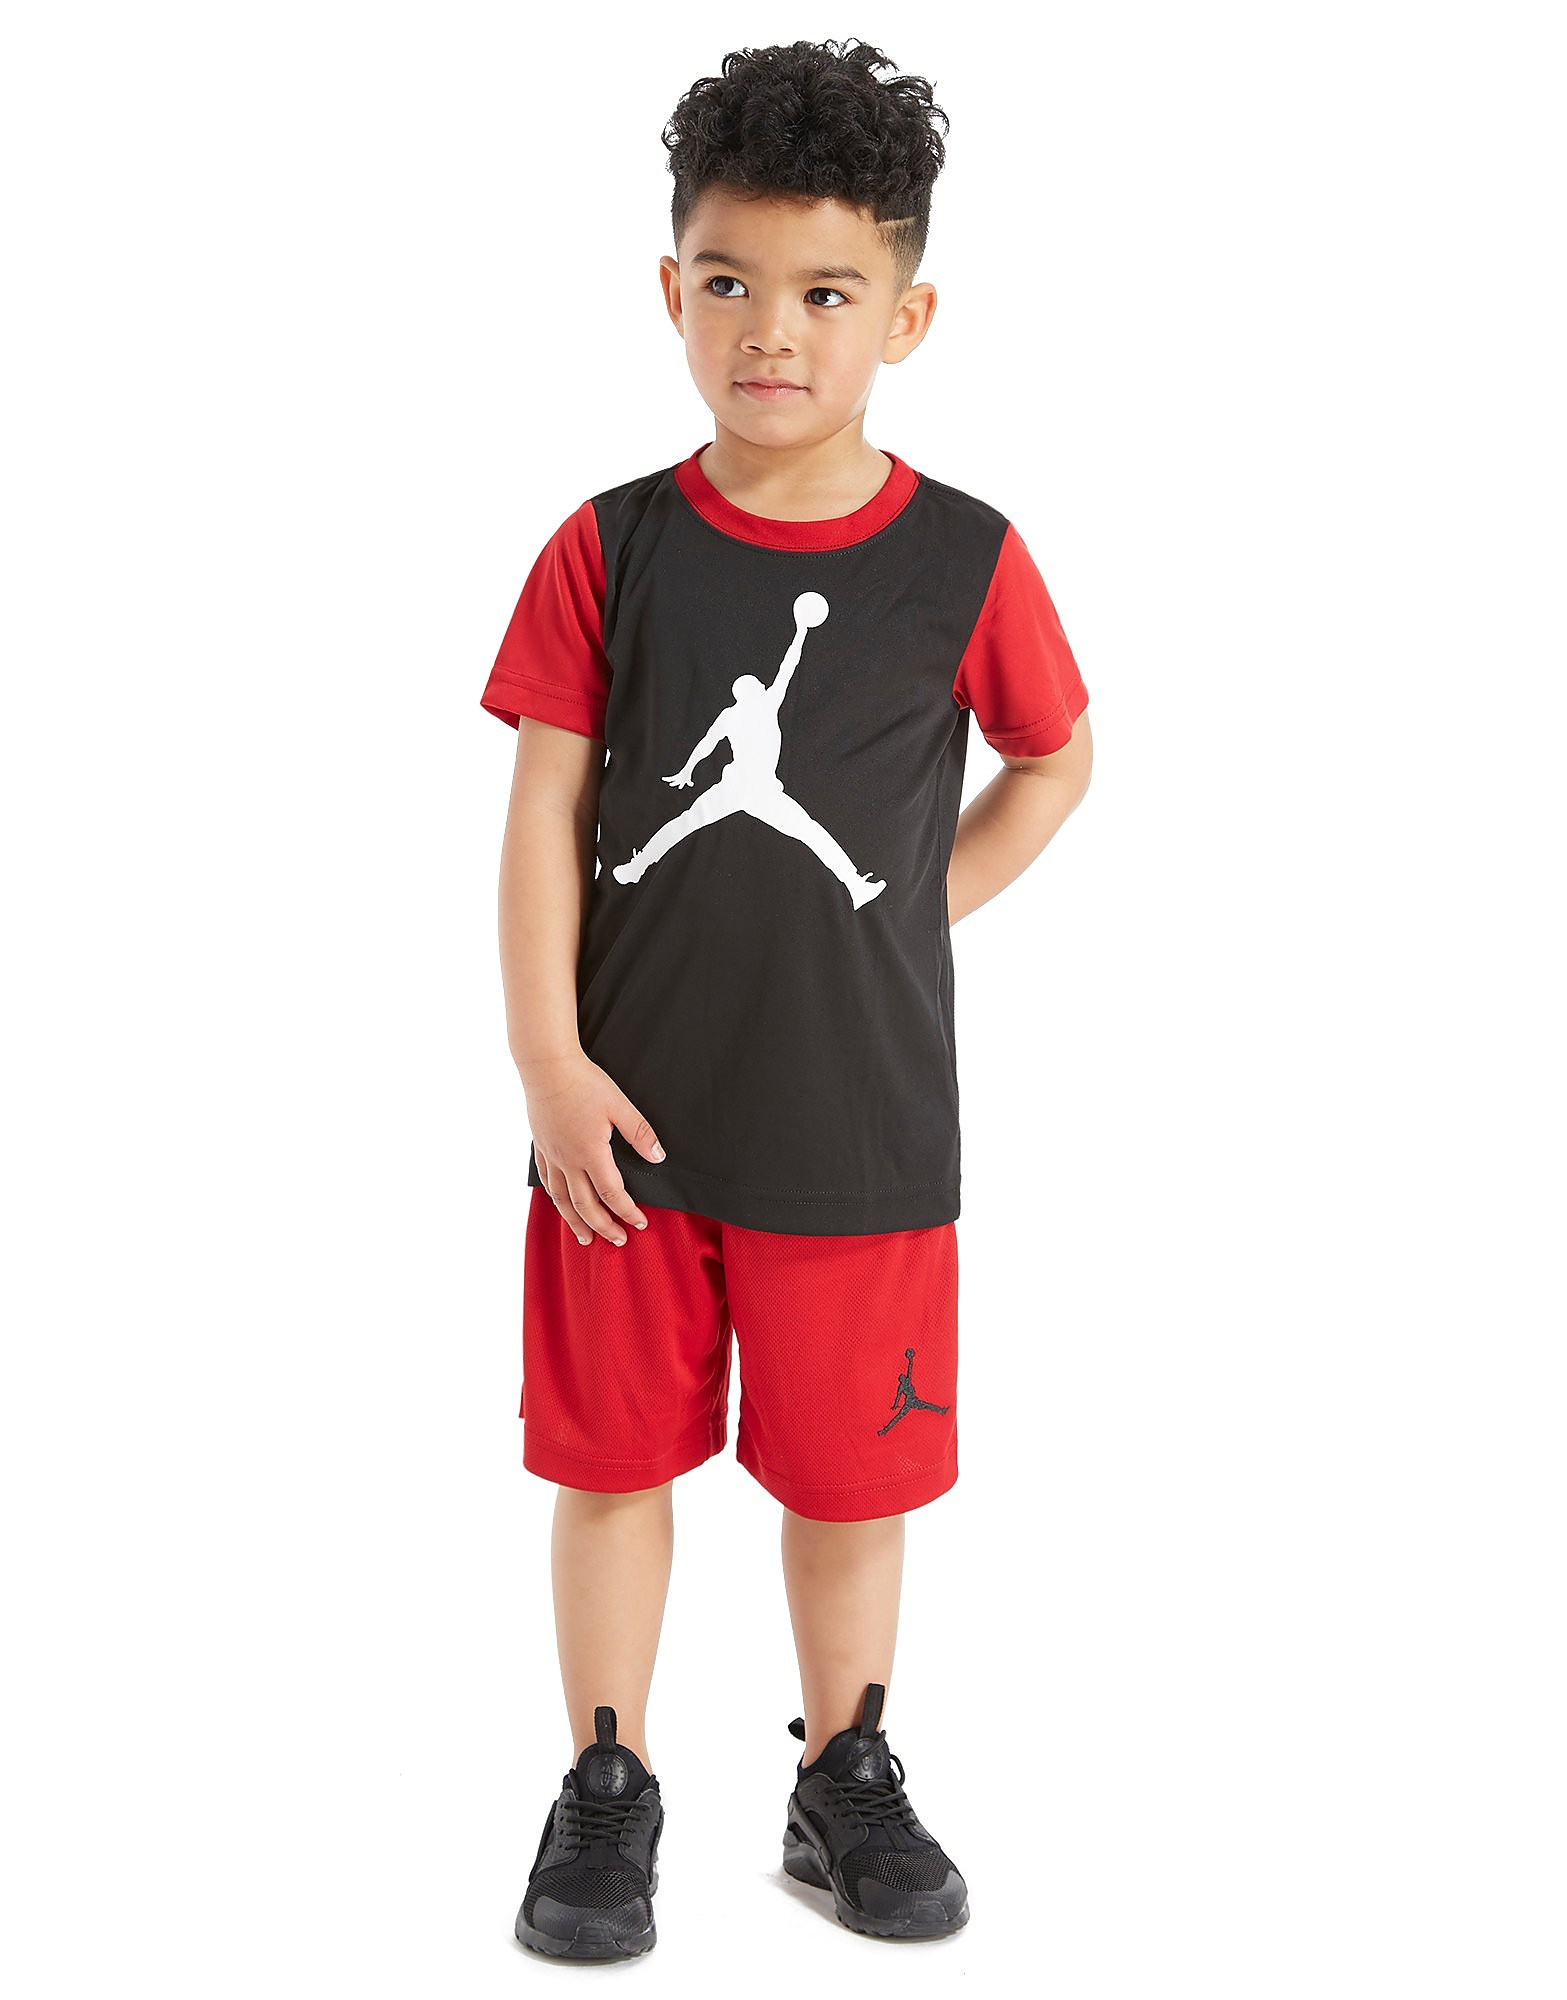 Jordan Ensemble Jumpman 4 Life T-Shirt/Short Enfant